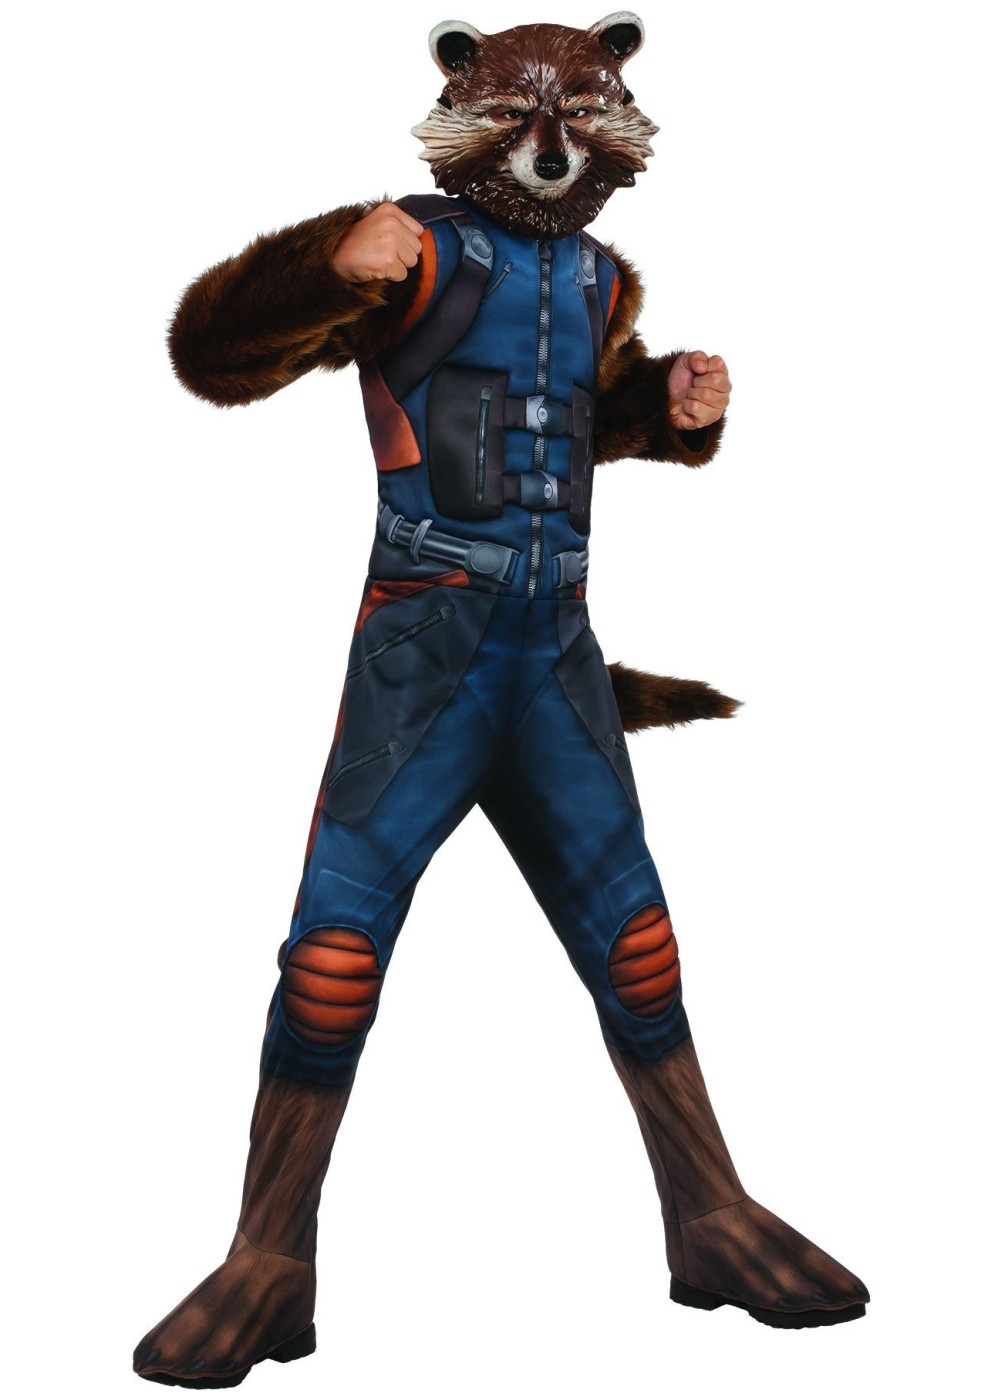 Toys For Boys 12 And Up : Rocket raccoon muscle boys costume superhero costumes